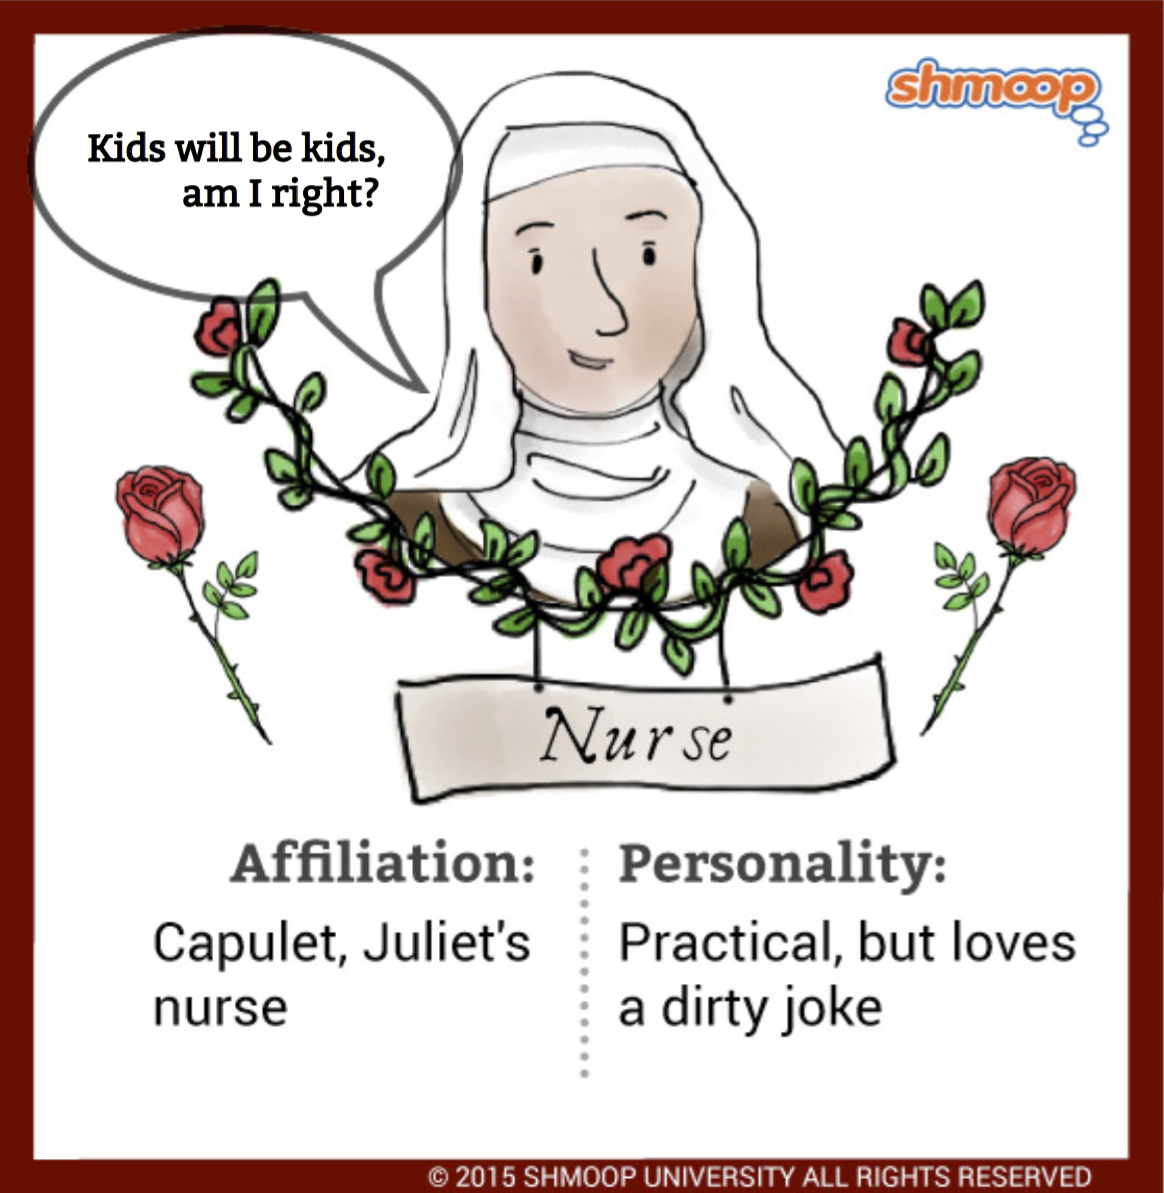 Romeo And Juliet Quotes And Meanings Amazing The Nurse In Romeo And Juliet